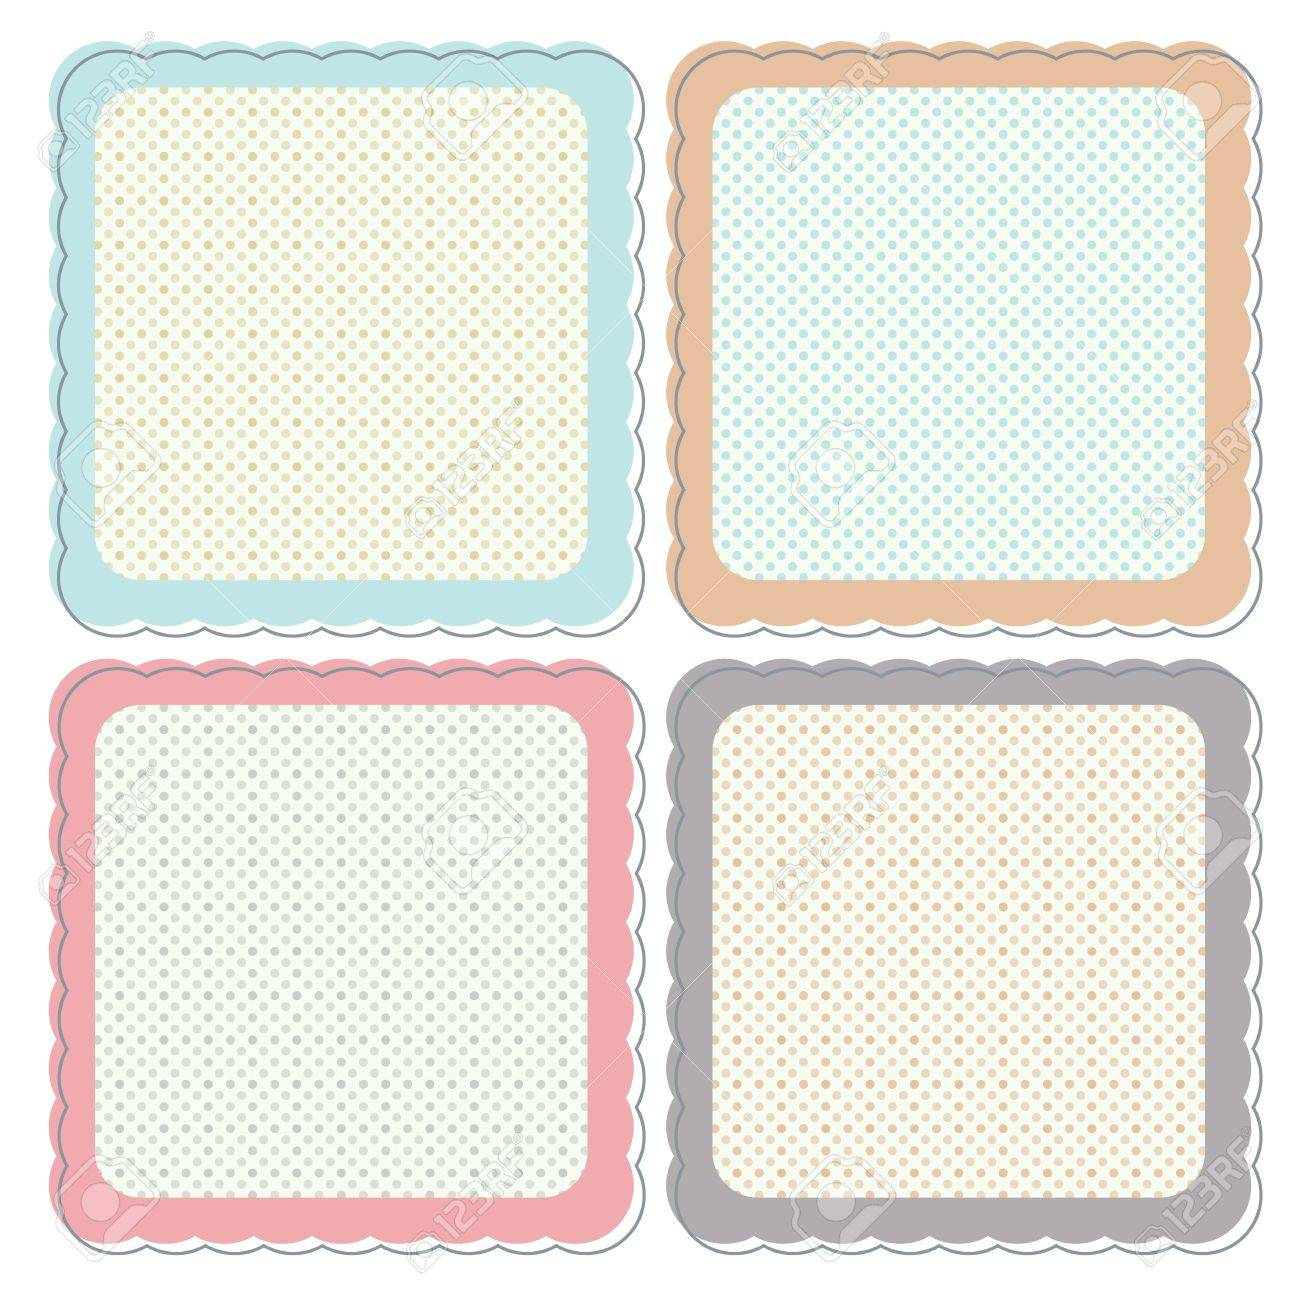 a set of cute retro icons or frames in pastel colours. these